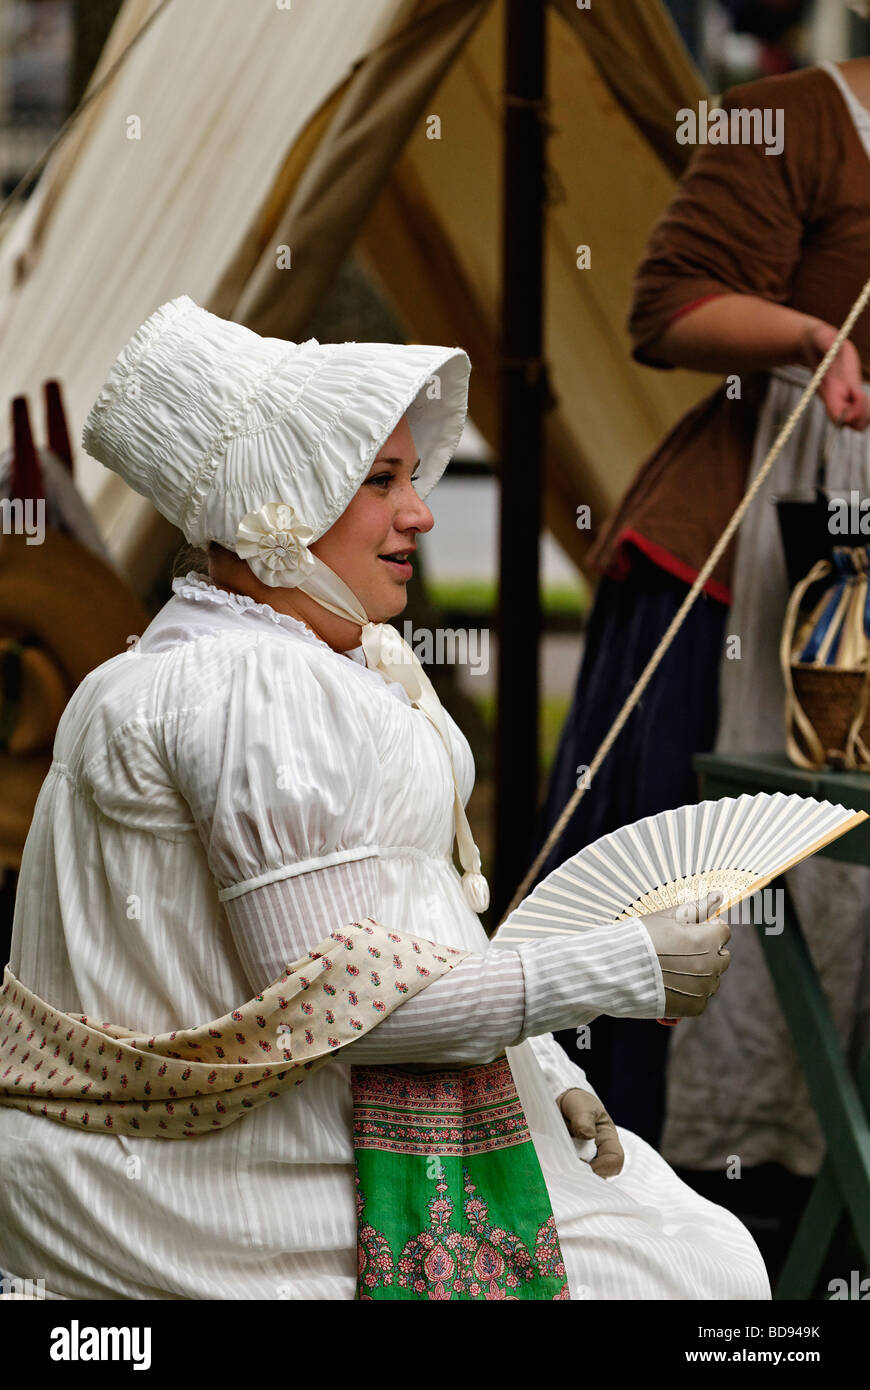 Woman in Early Nineteenth Century Costume Sitting at Encampment at Reenactment in Corydon Indiana - Stock Image